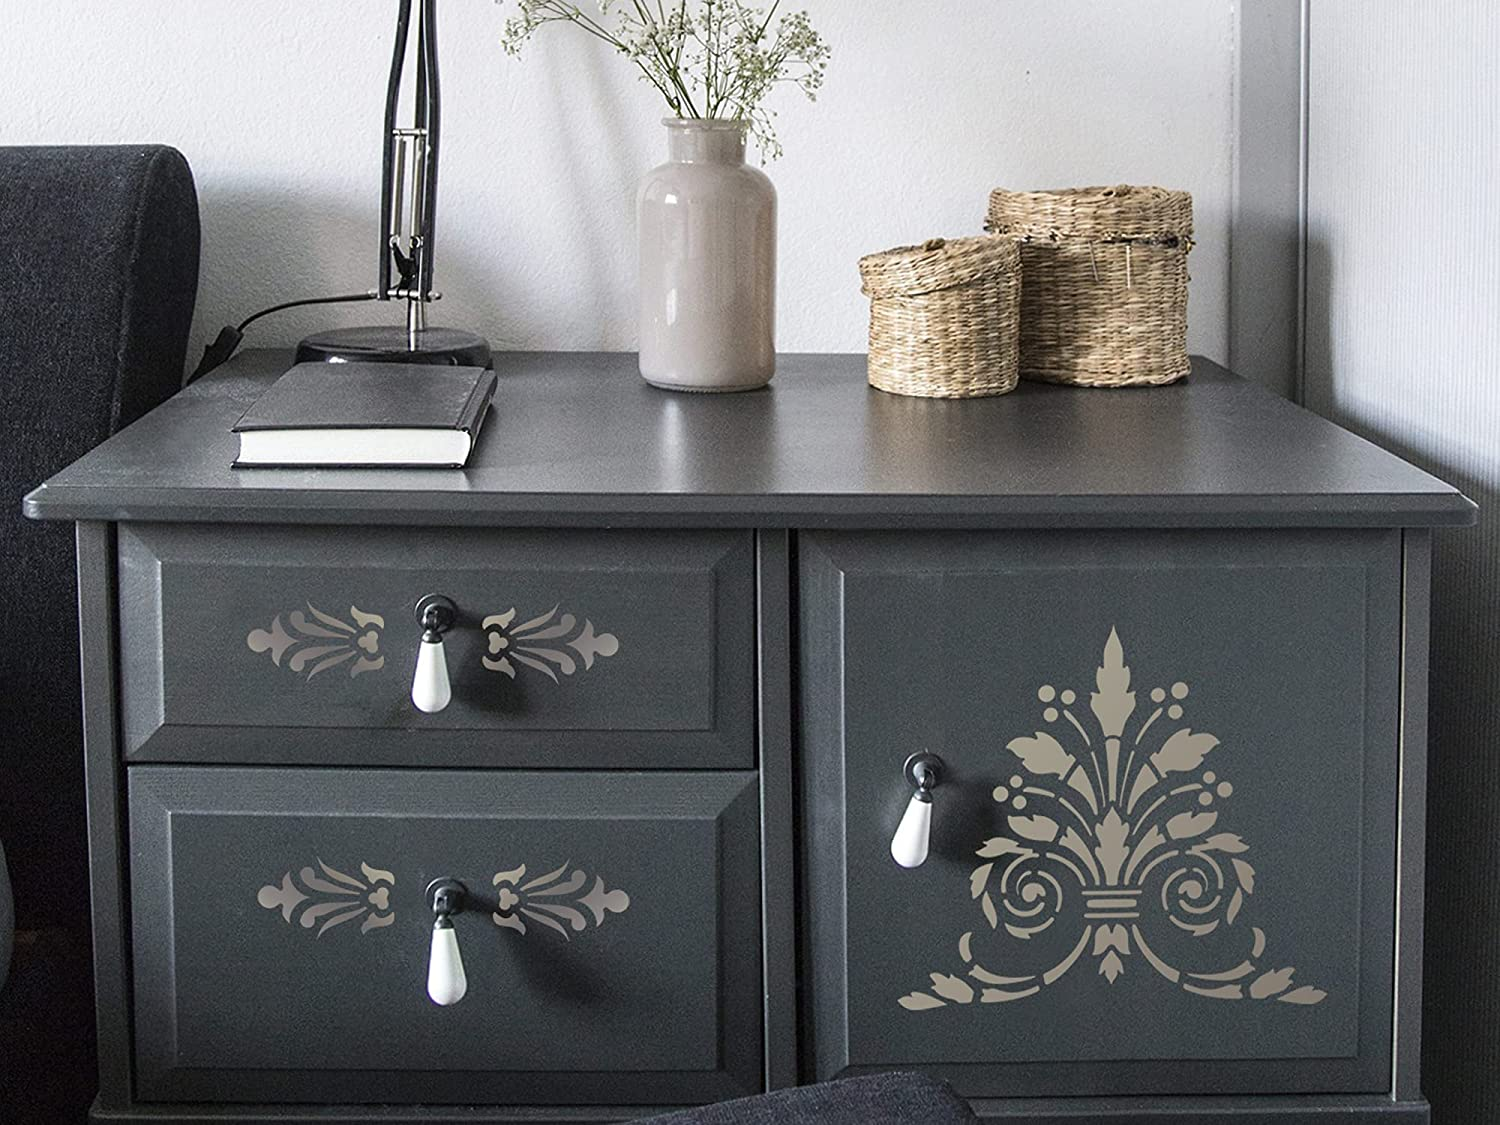 Furniture Selling rankings Transfers wholesale Decals for